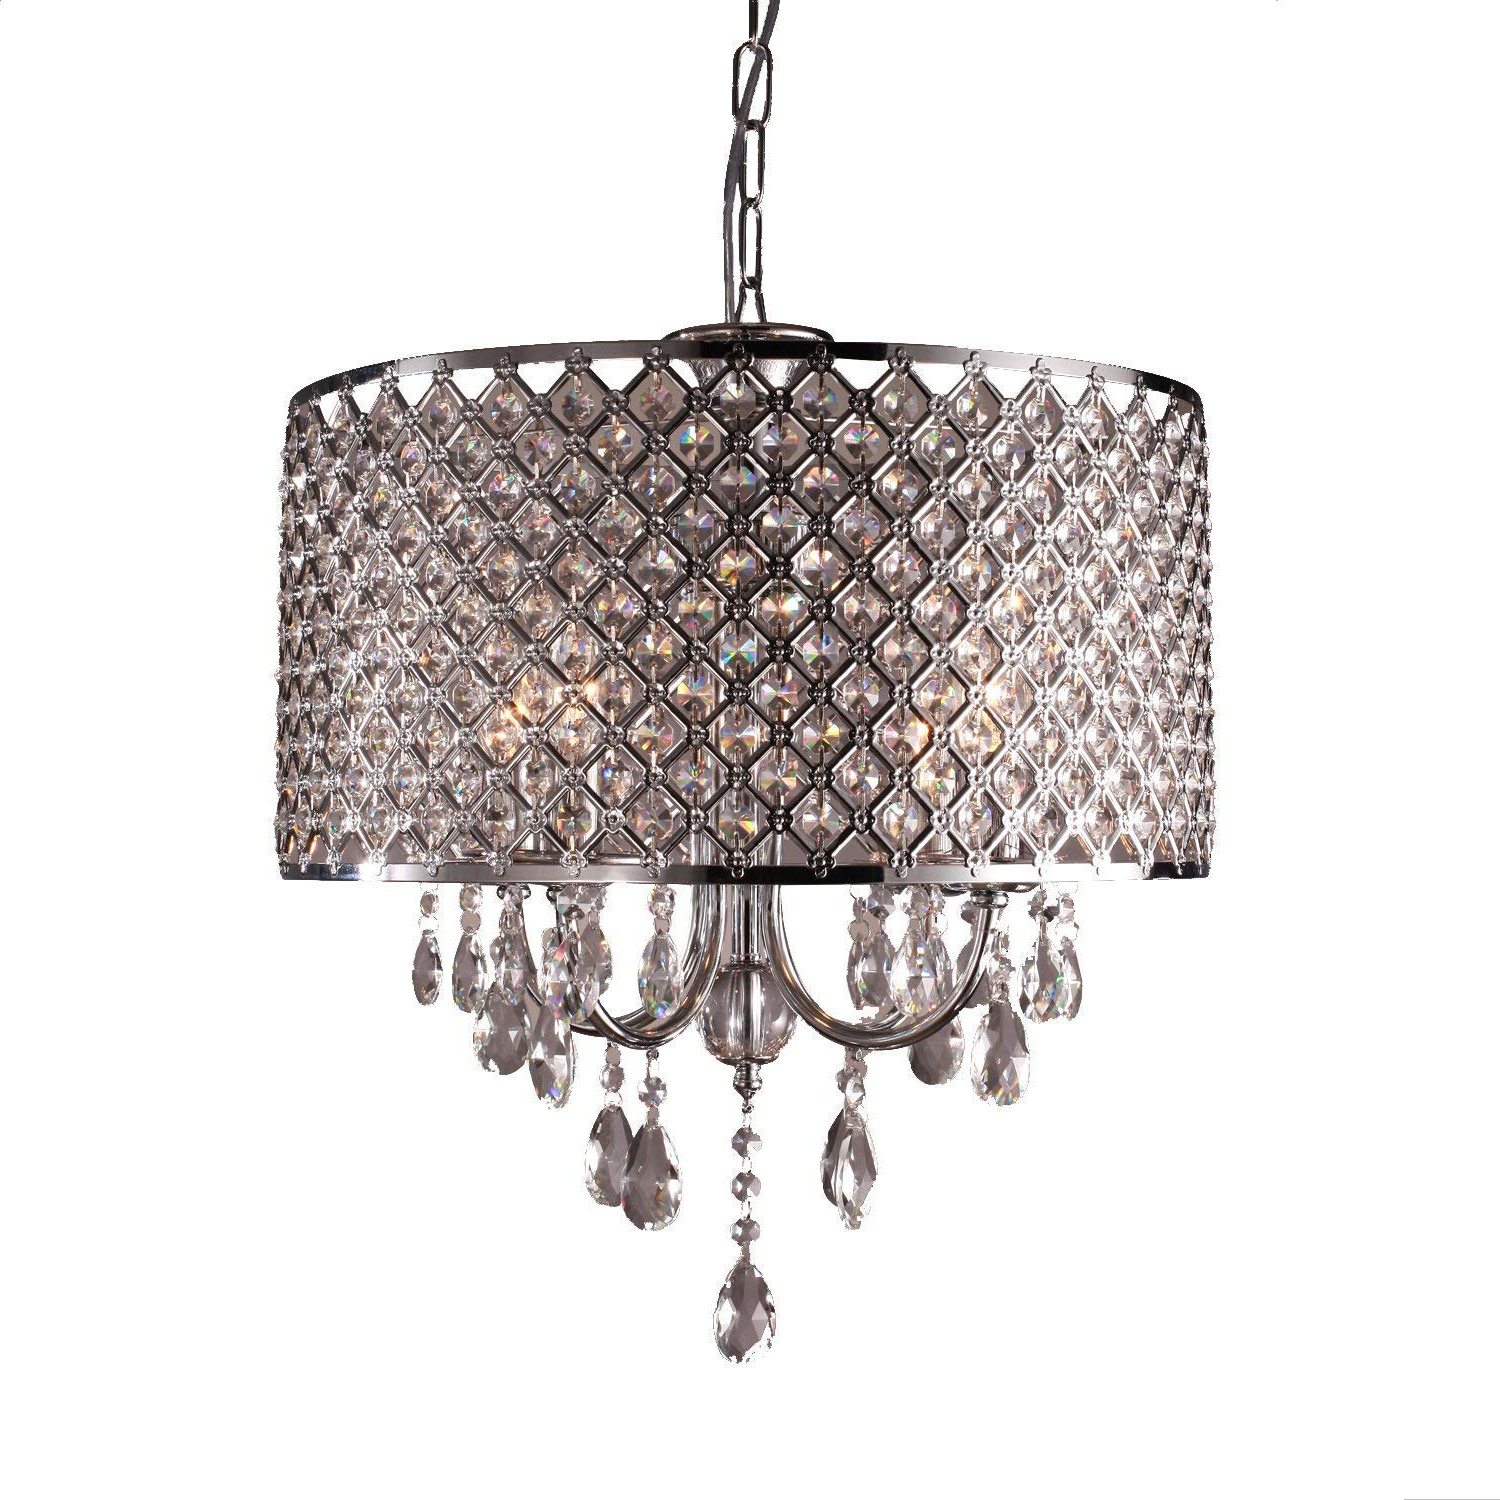 Emaria 3-Light Single Drum Pendants intended for Favorite Lightinthebox Drum Chandelier Crystal Modern 4 Lights, Modern Home Ceiling  Light Fixture Flush Mount, Pendant Light Chandeliers Lighting